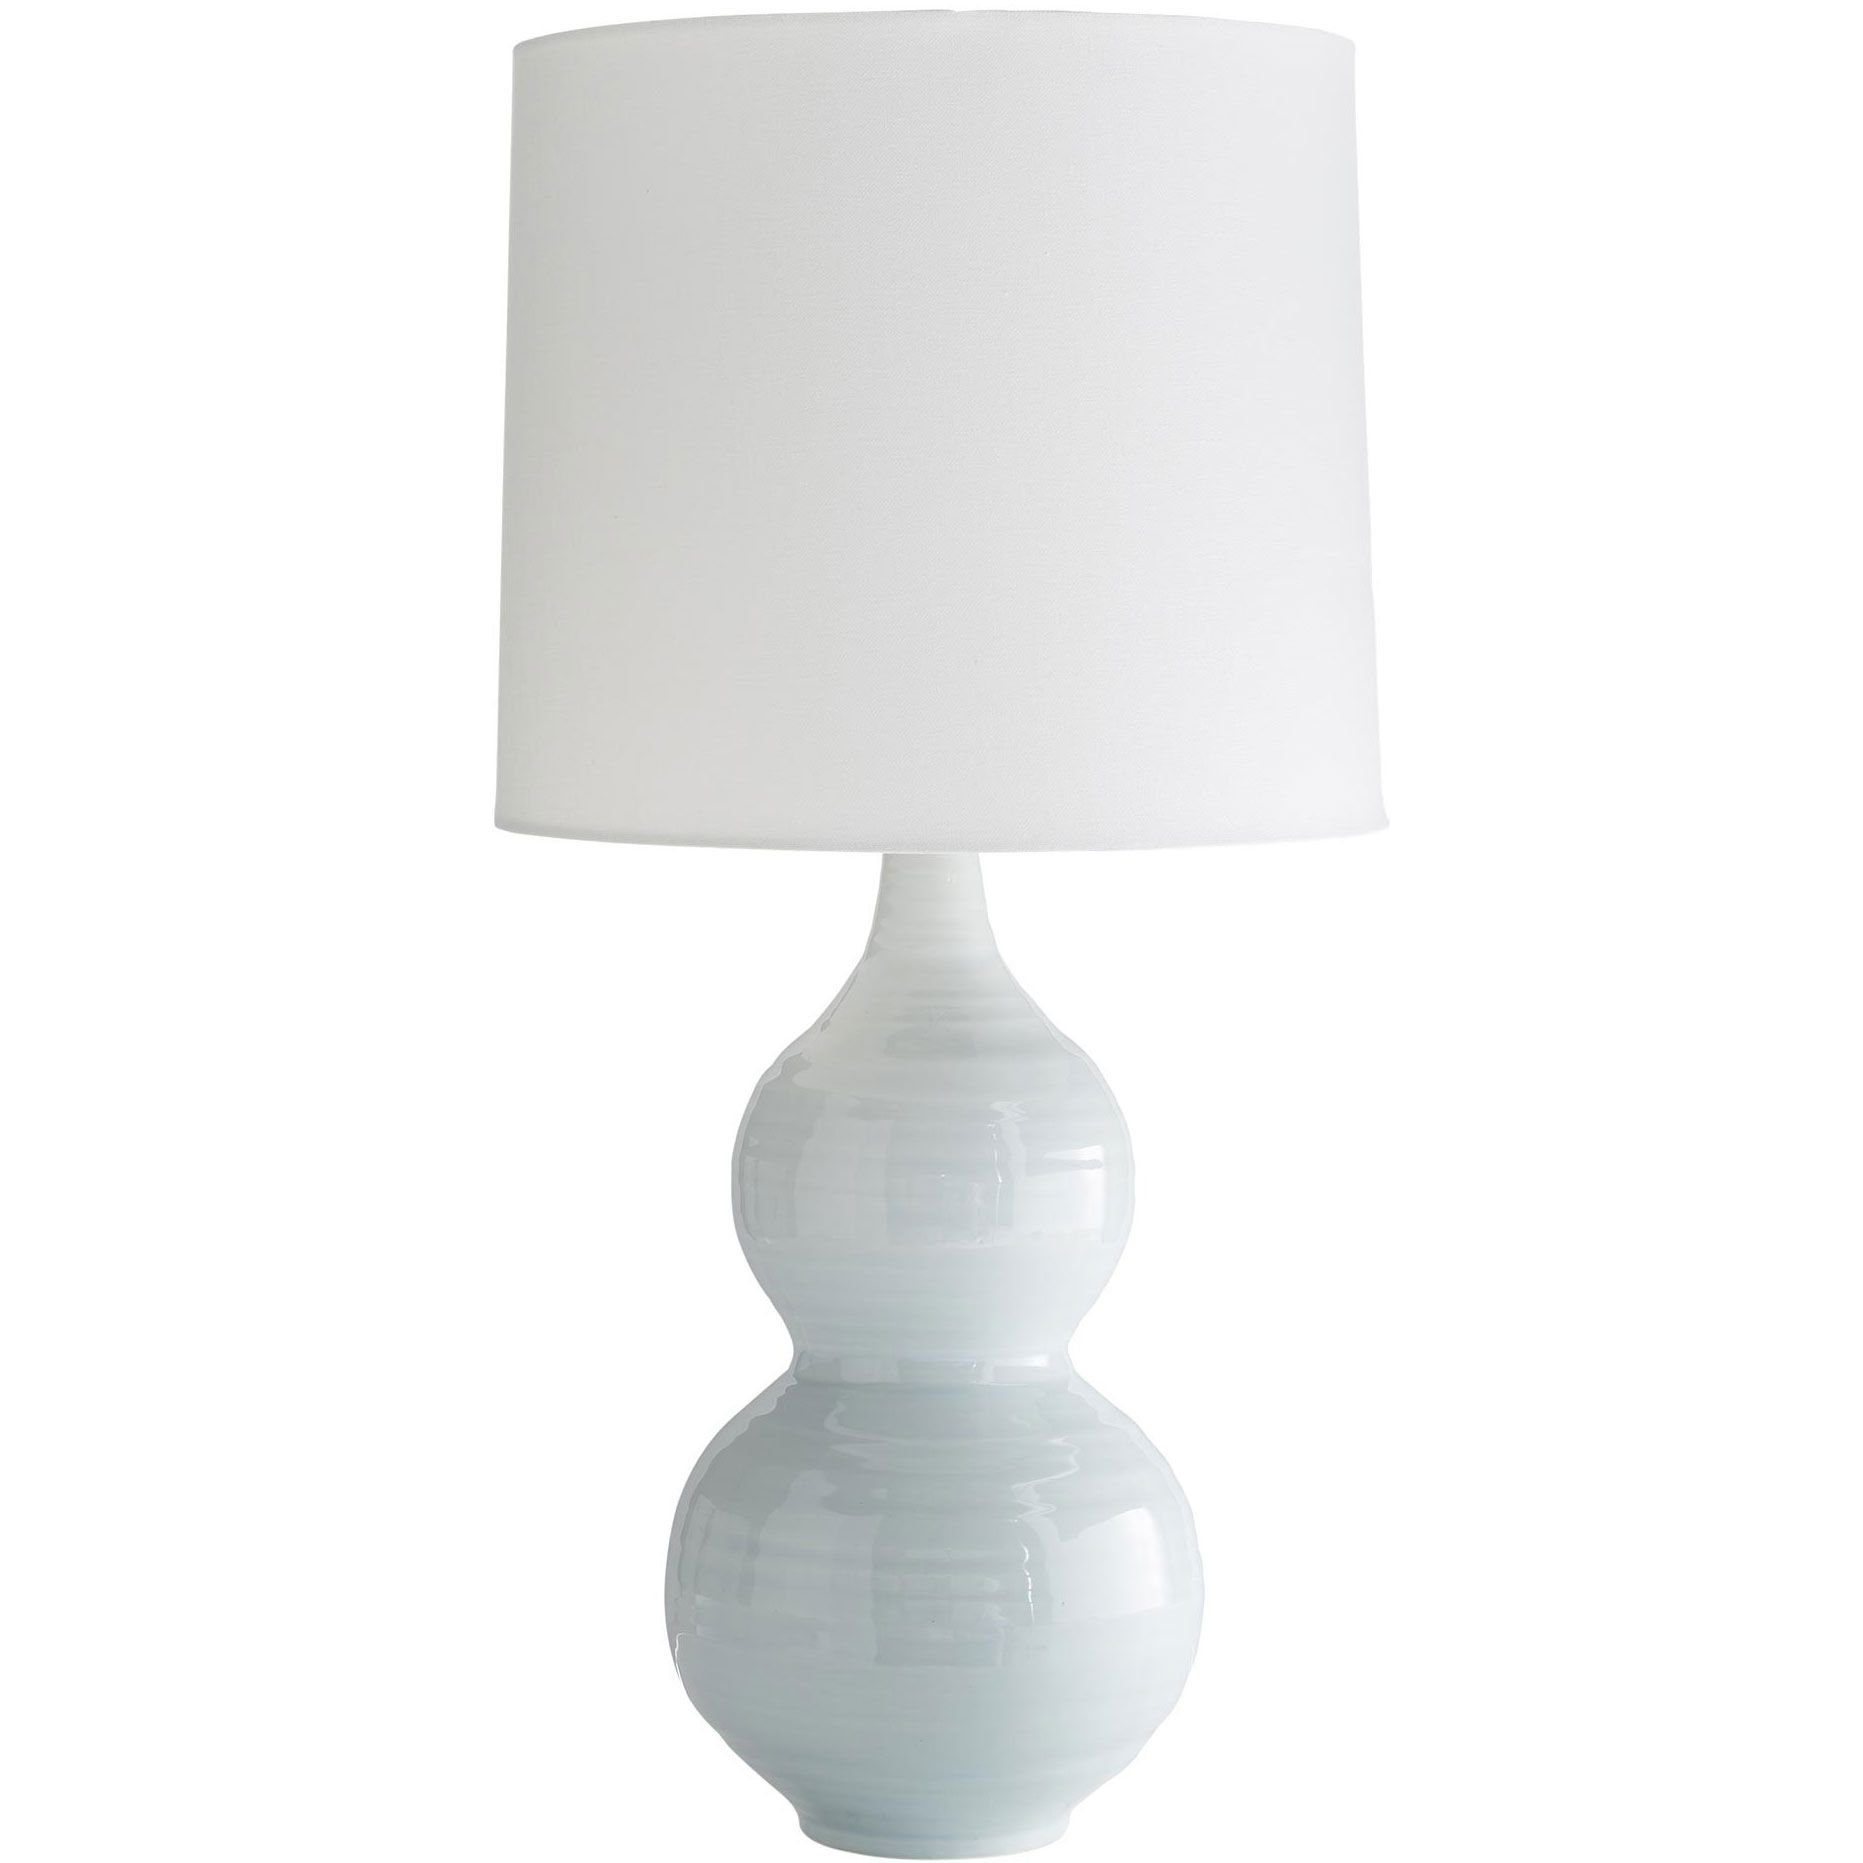 Lacey Table Lamp By Arteriors Home Ah 17352 151 Ceramic Table